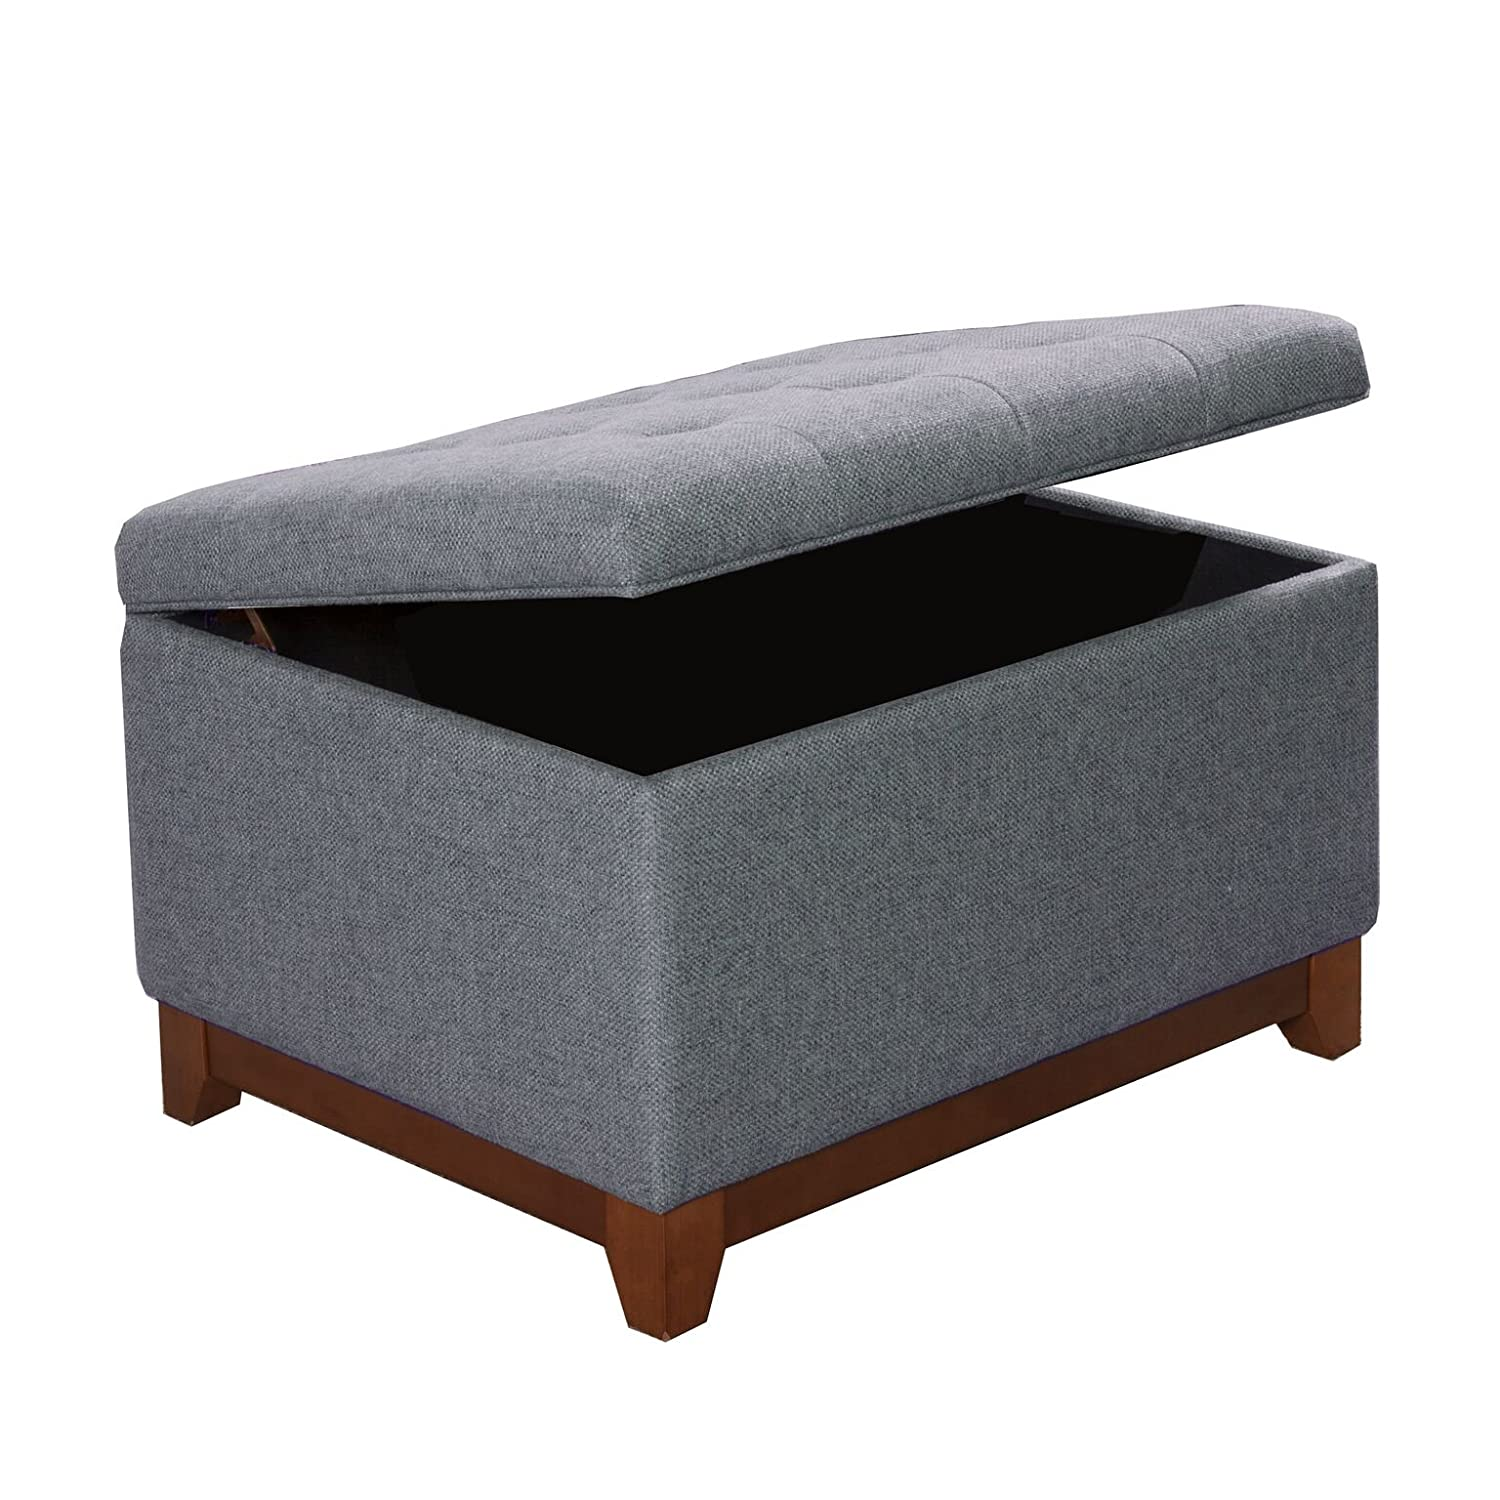 HomePop Upholstered Chunky Textured Tufted Storage Ottoman with Hinged Lid, Gray